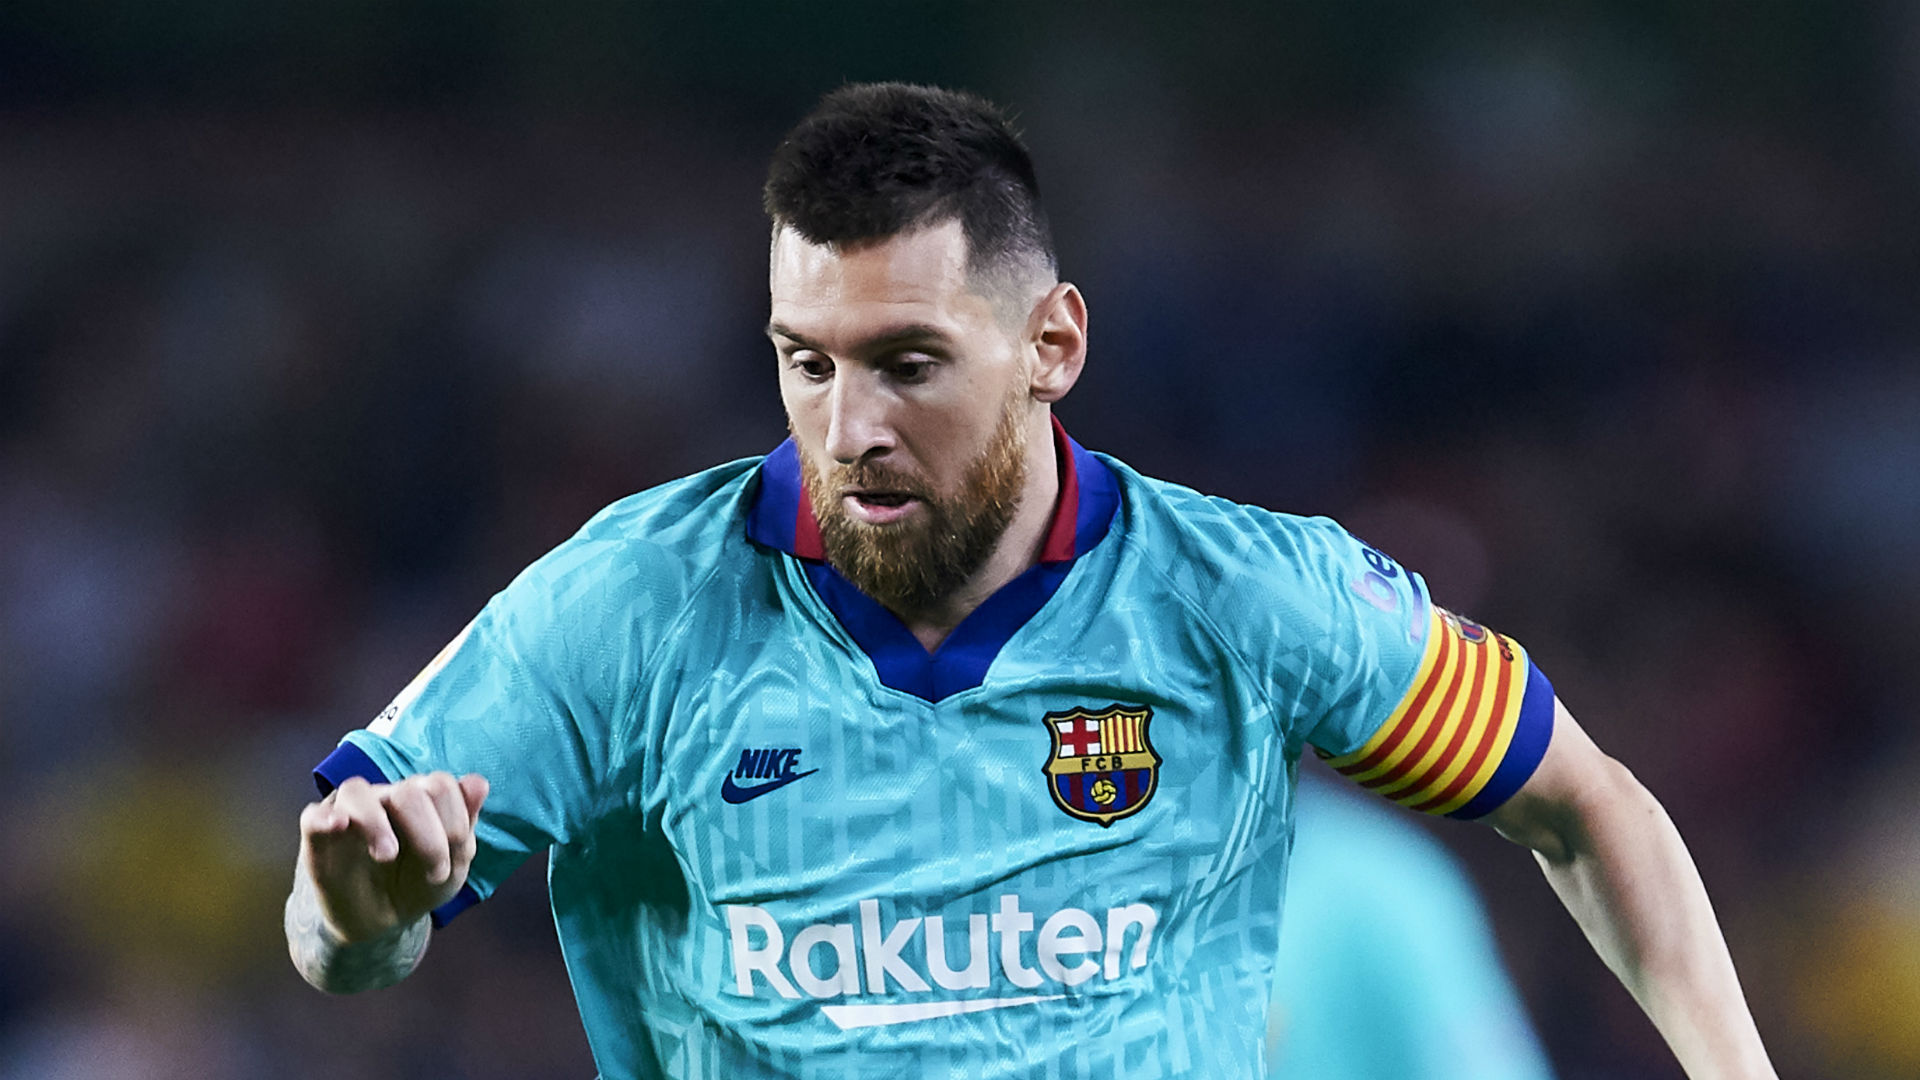 Messi will be the best as long as he wants - Scaloni